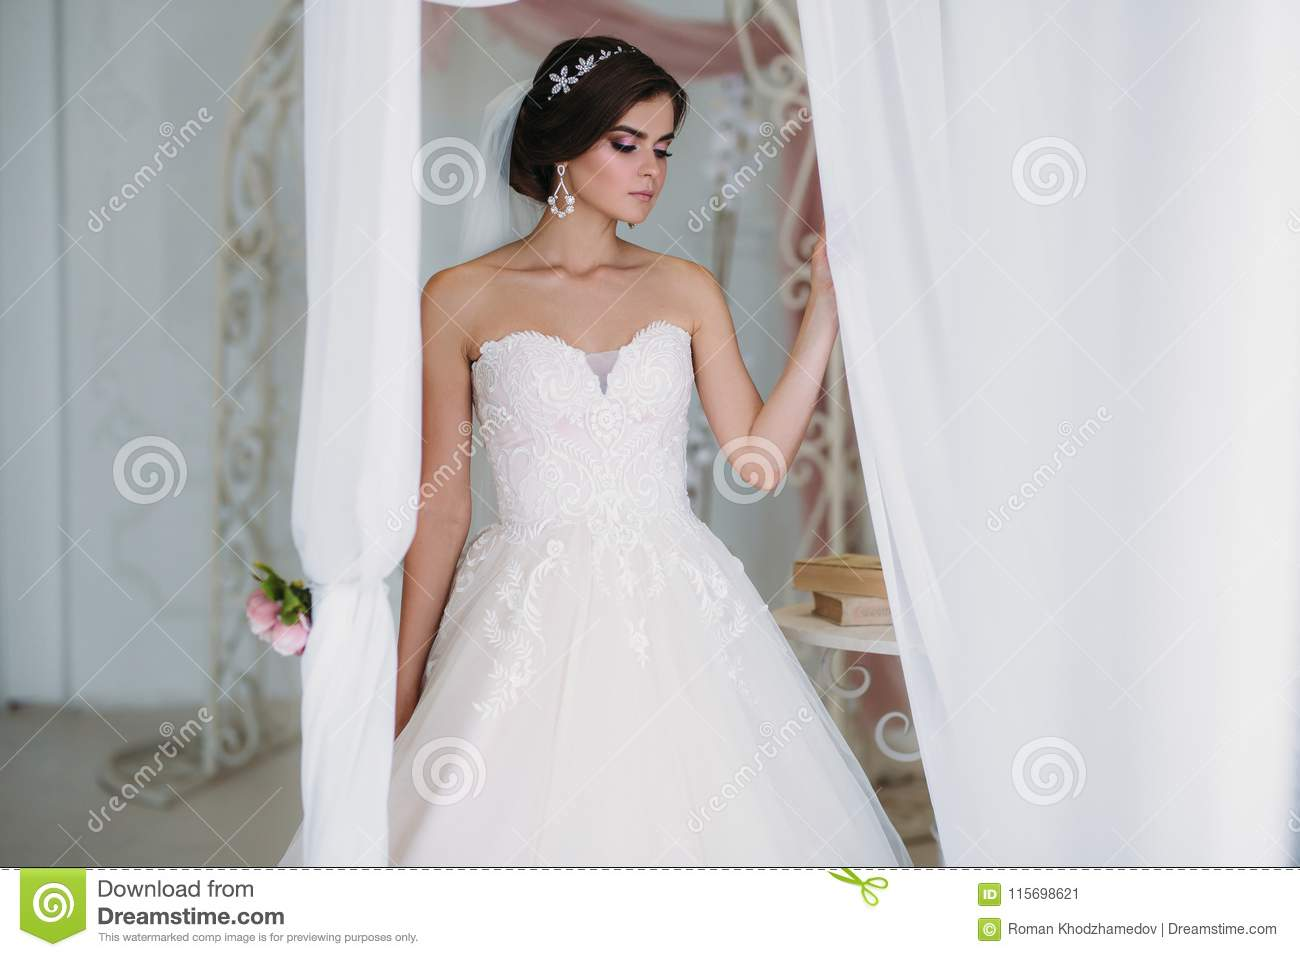 Morning Of The Bride Portrait Of Beautiful Woman In White Luxury